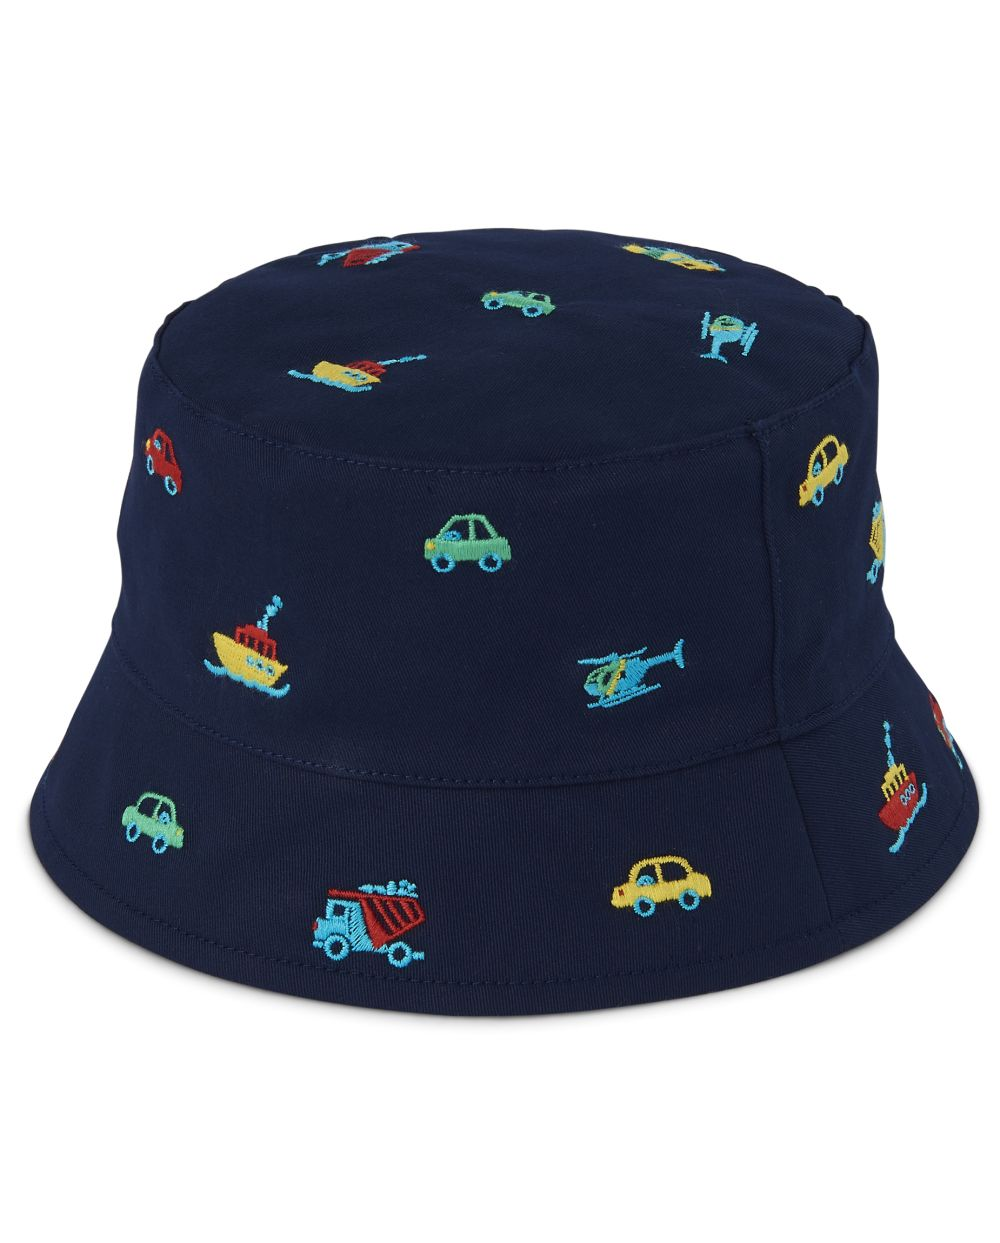 Boys Embroidered Transportation Bucket Hat - Travel Adventure